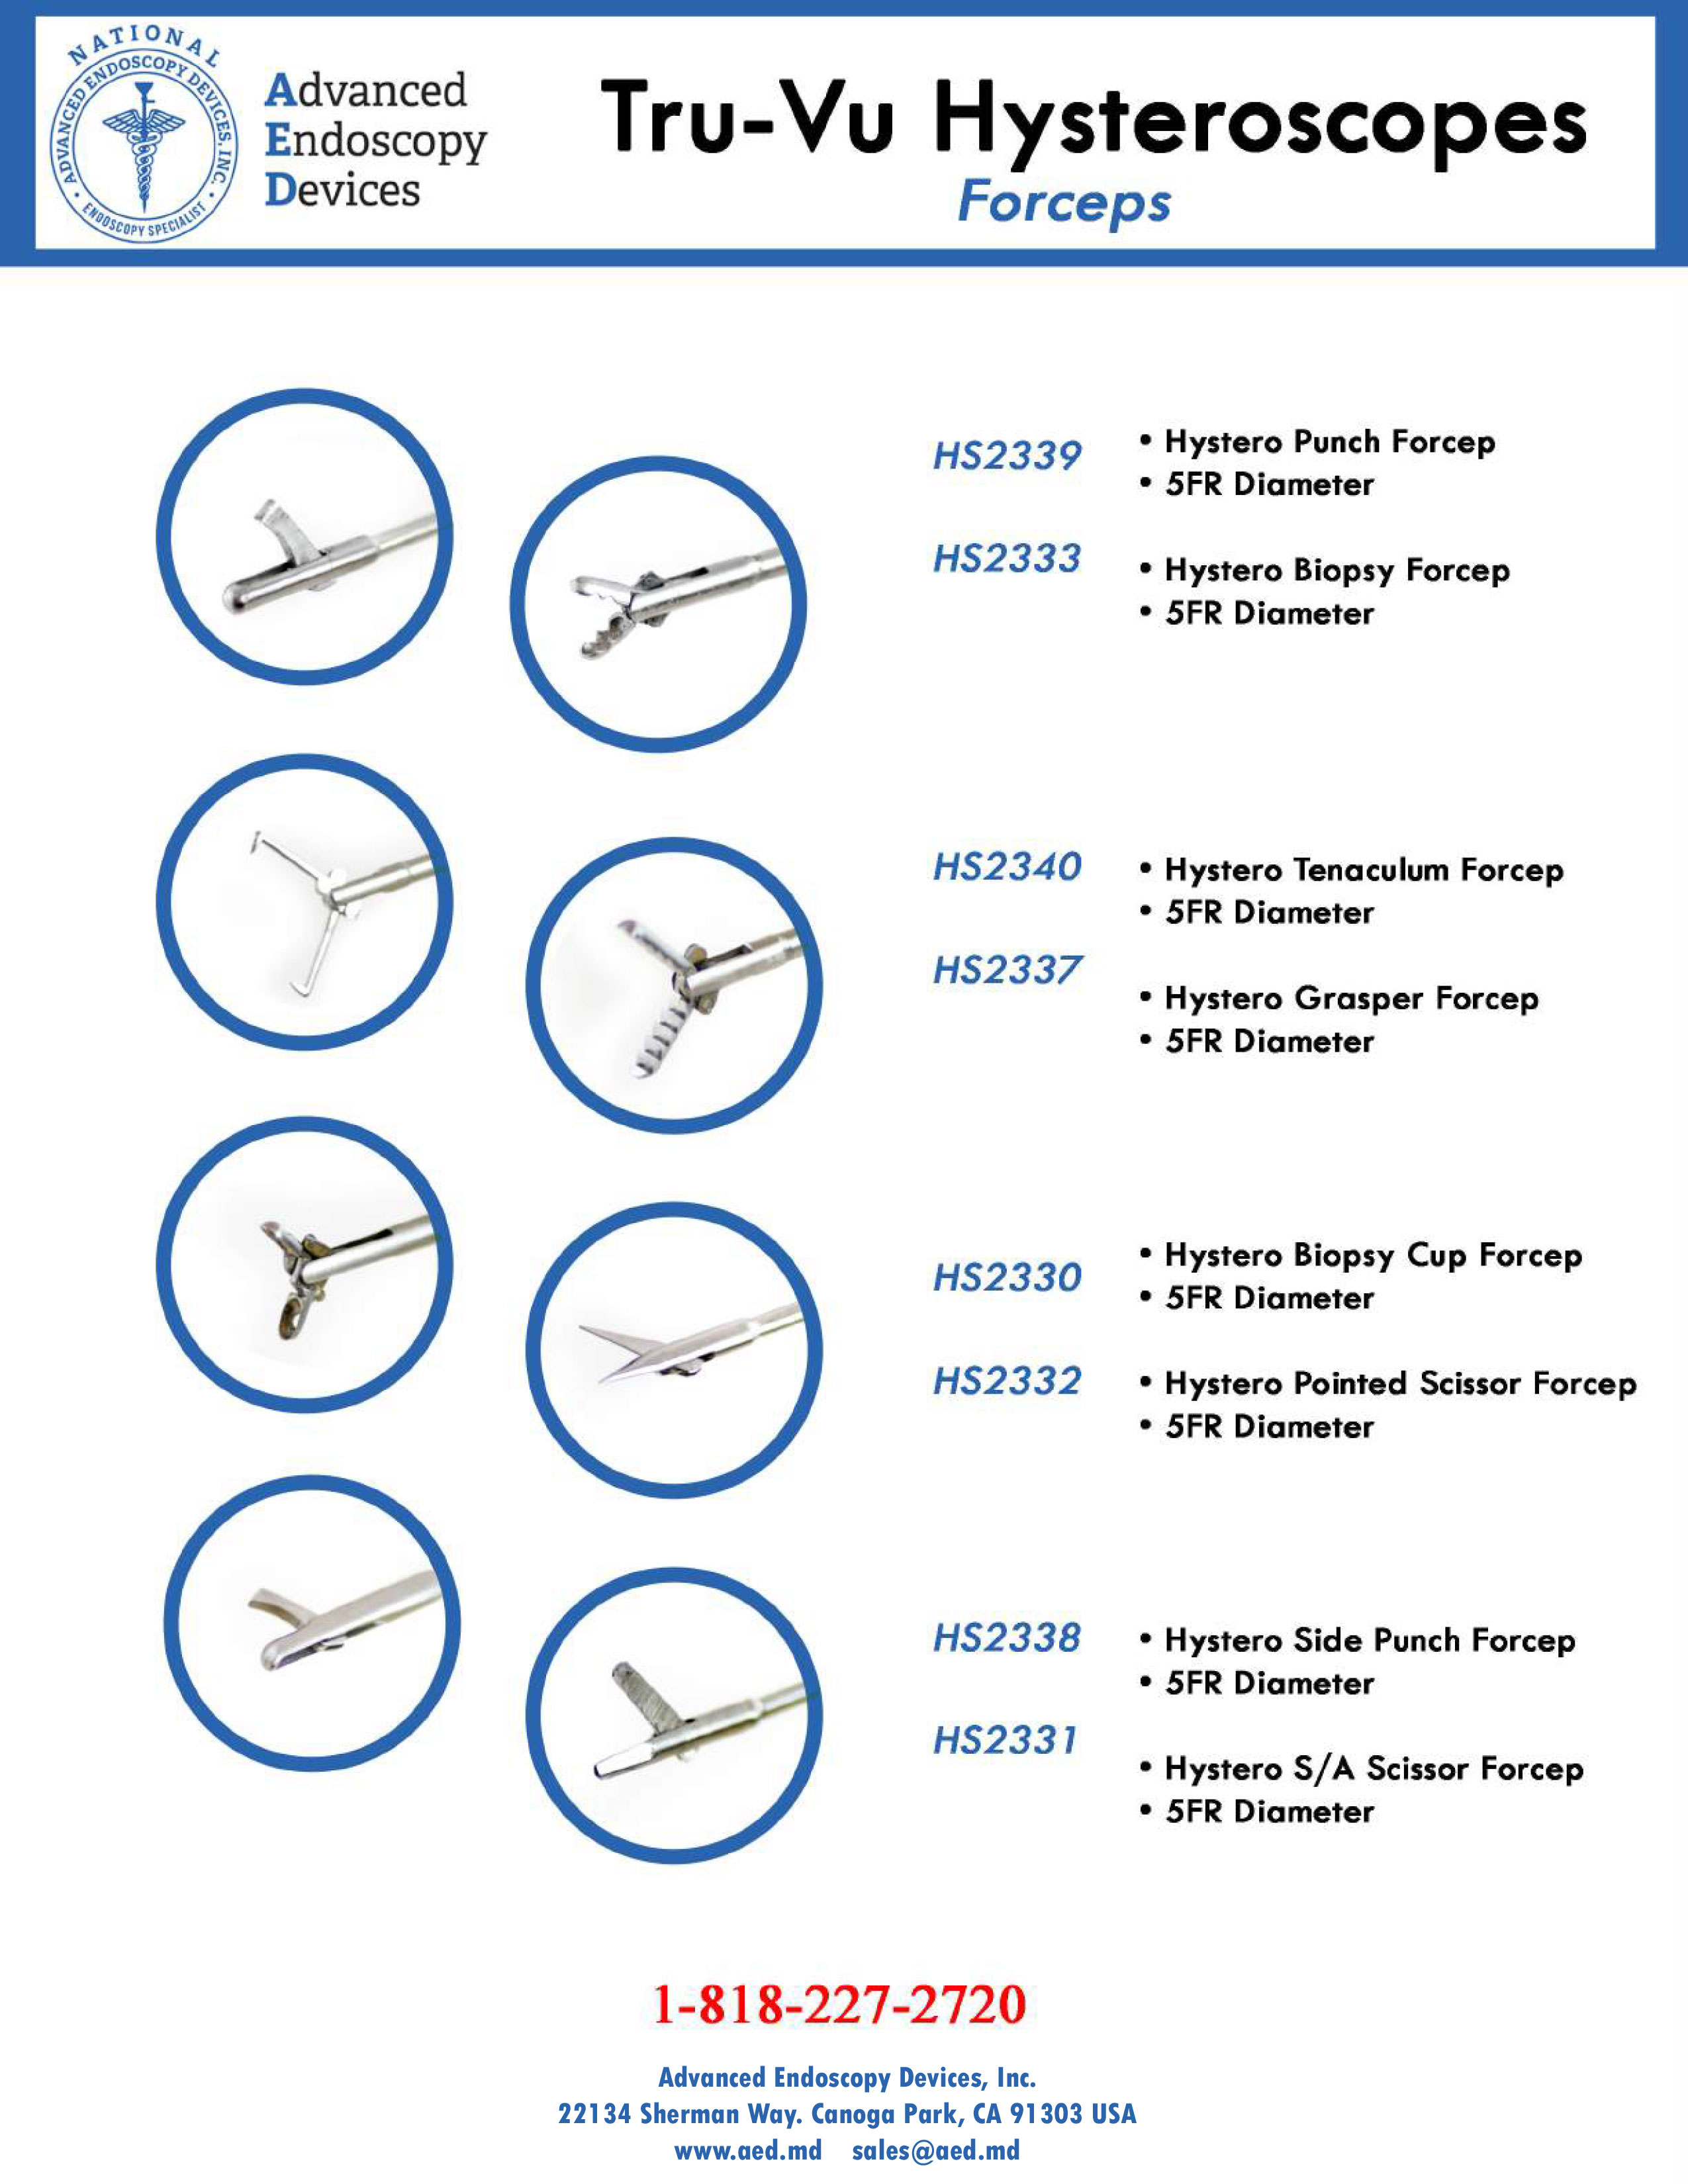 Tru-Vu Hysteroscopes Forceps Product Page